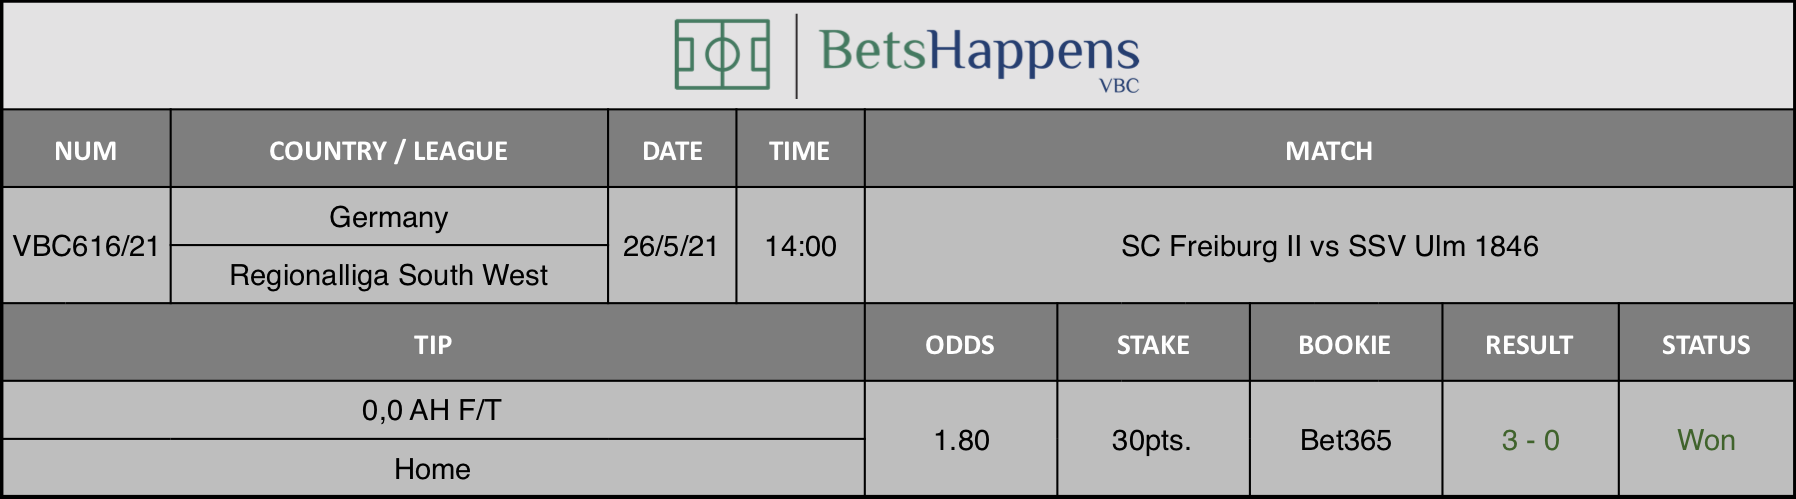 Results of our tip for the SC Freiburg II vs SSV Ulm 1846 match where 0,0 AH F/T  Home is recommended.